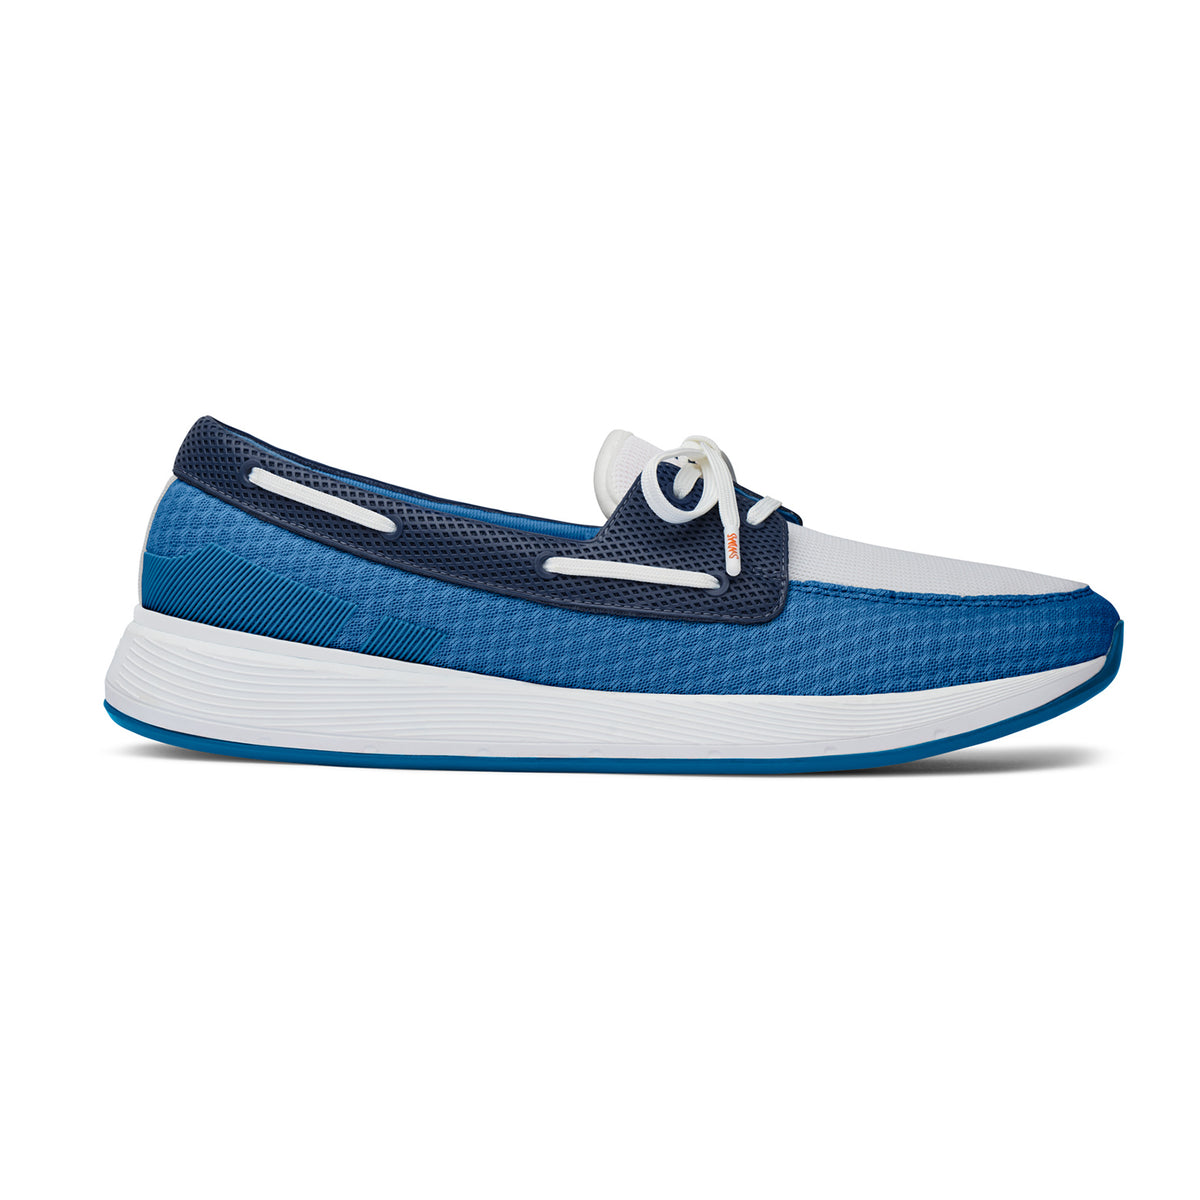 Breeze Wave Boat - background::white,variant::Seaport Blue/Navy